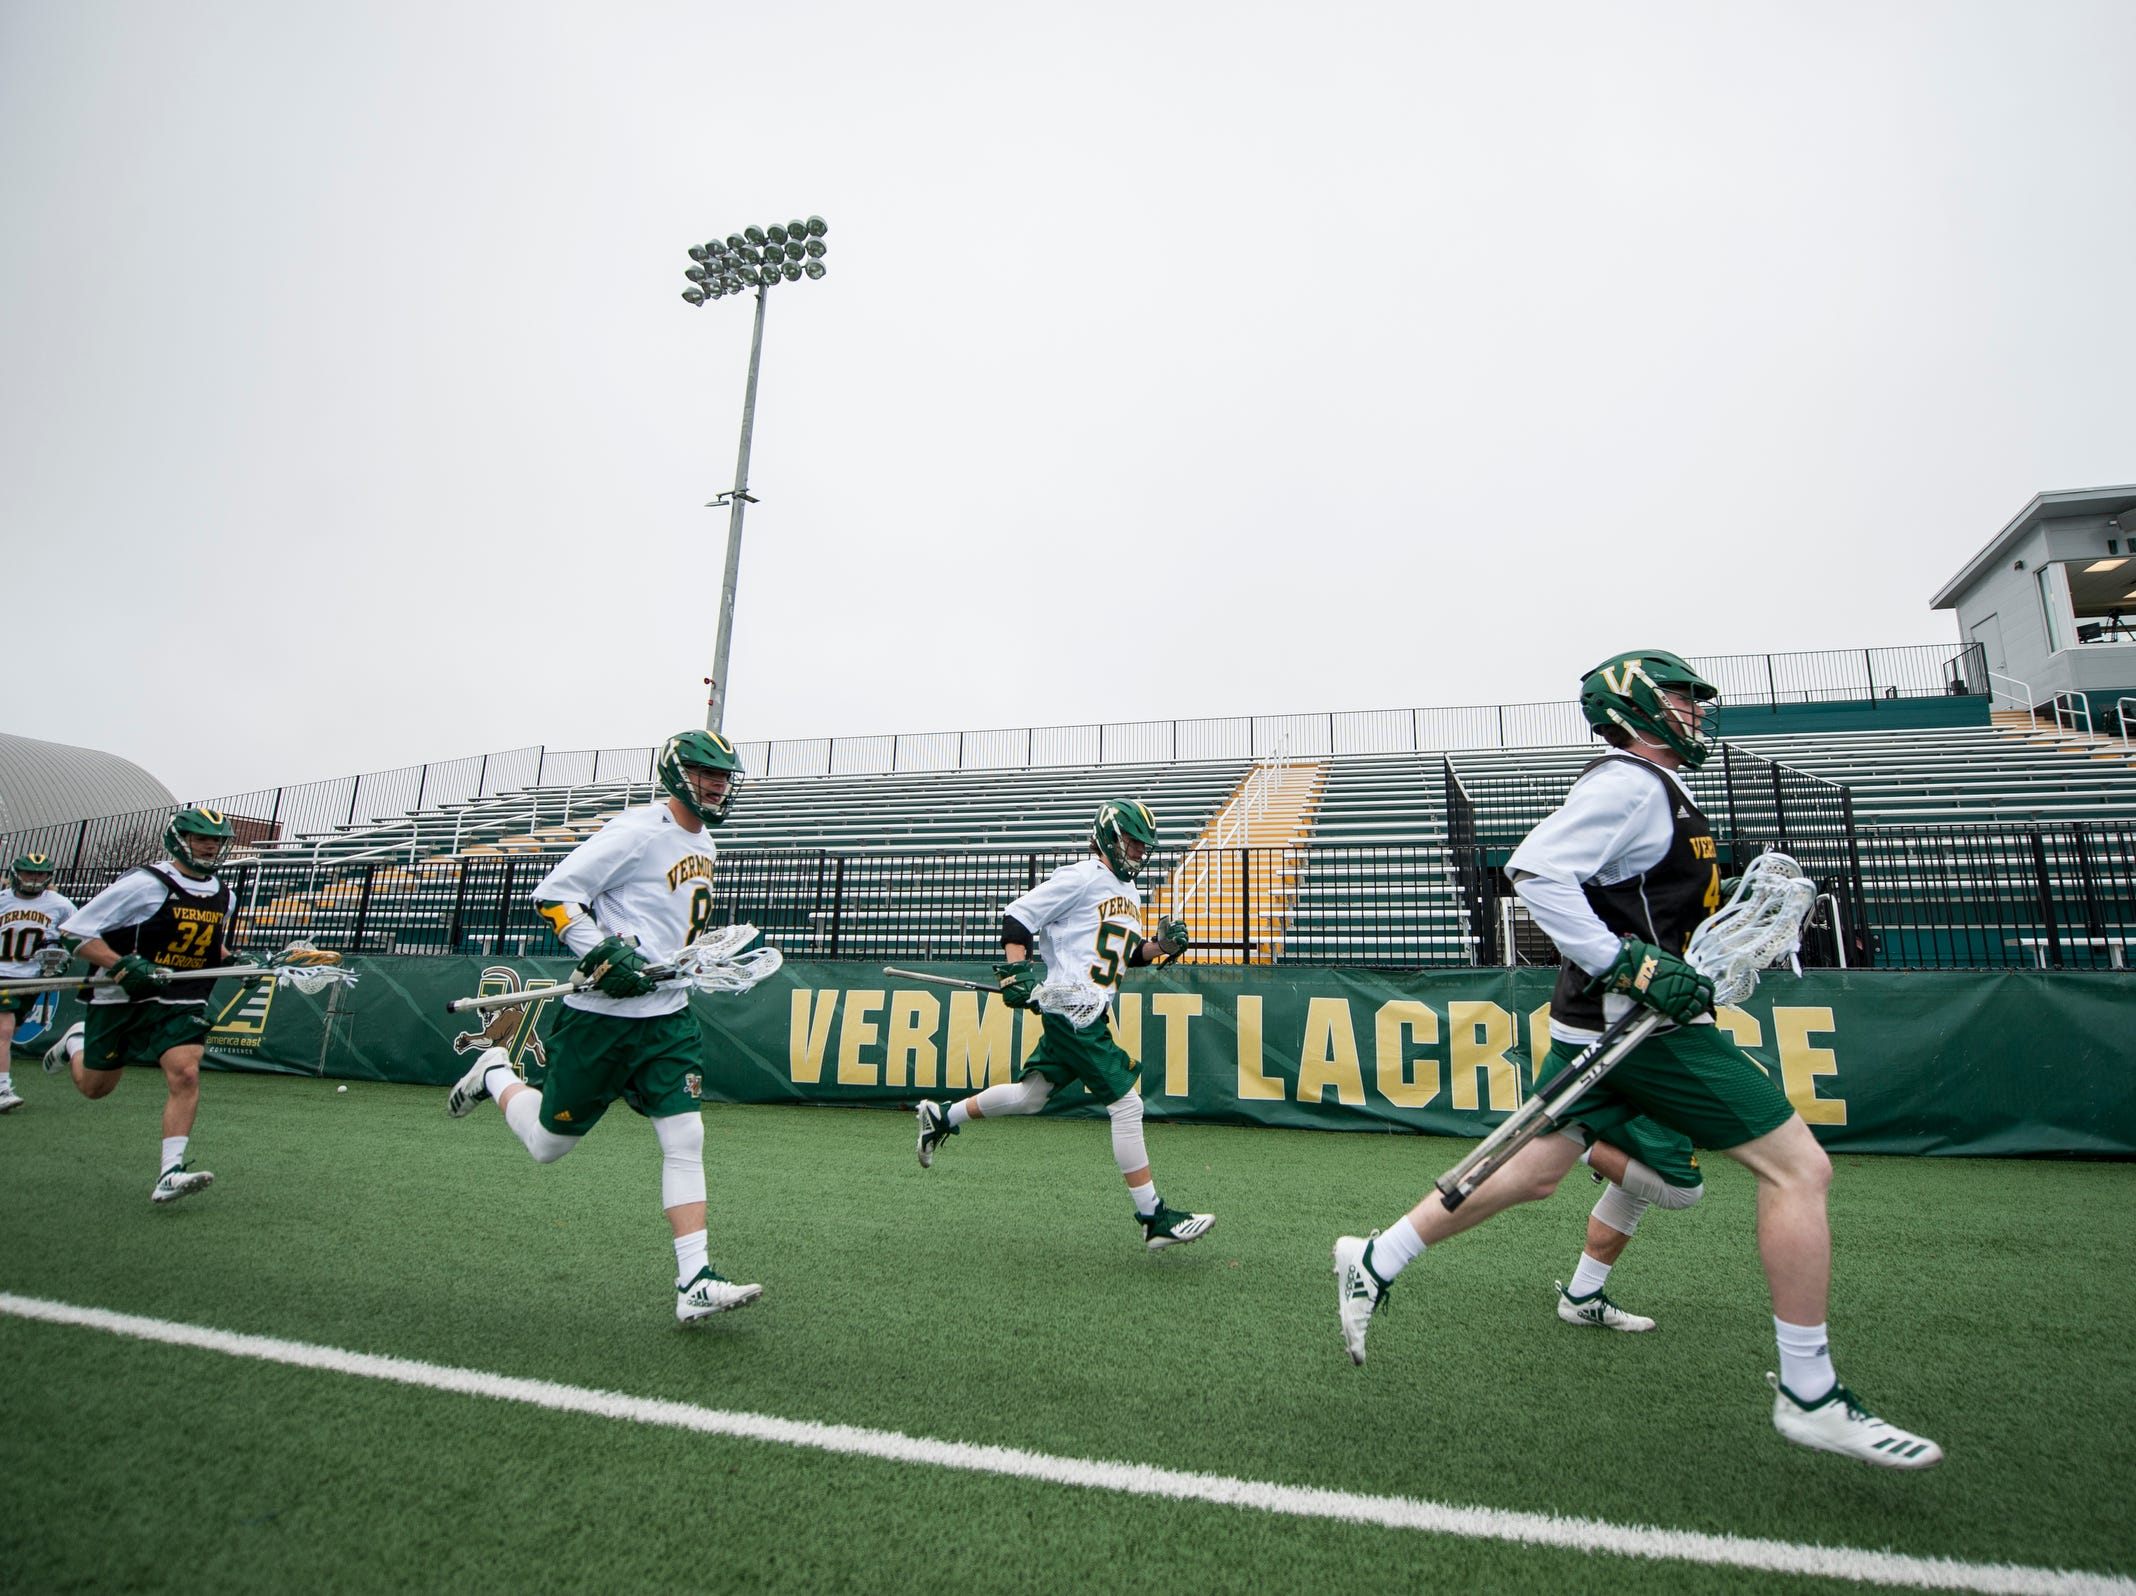 Vermont takes the field during the men's lacrosse game between the Stony Brook Sea Wolves and the Vermont Catamounts at Virtue Field on Saturday afternoon April 20, 2019 in Burlington, Vermont.